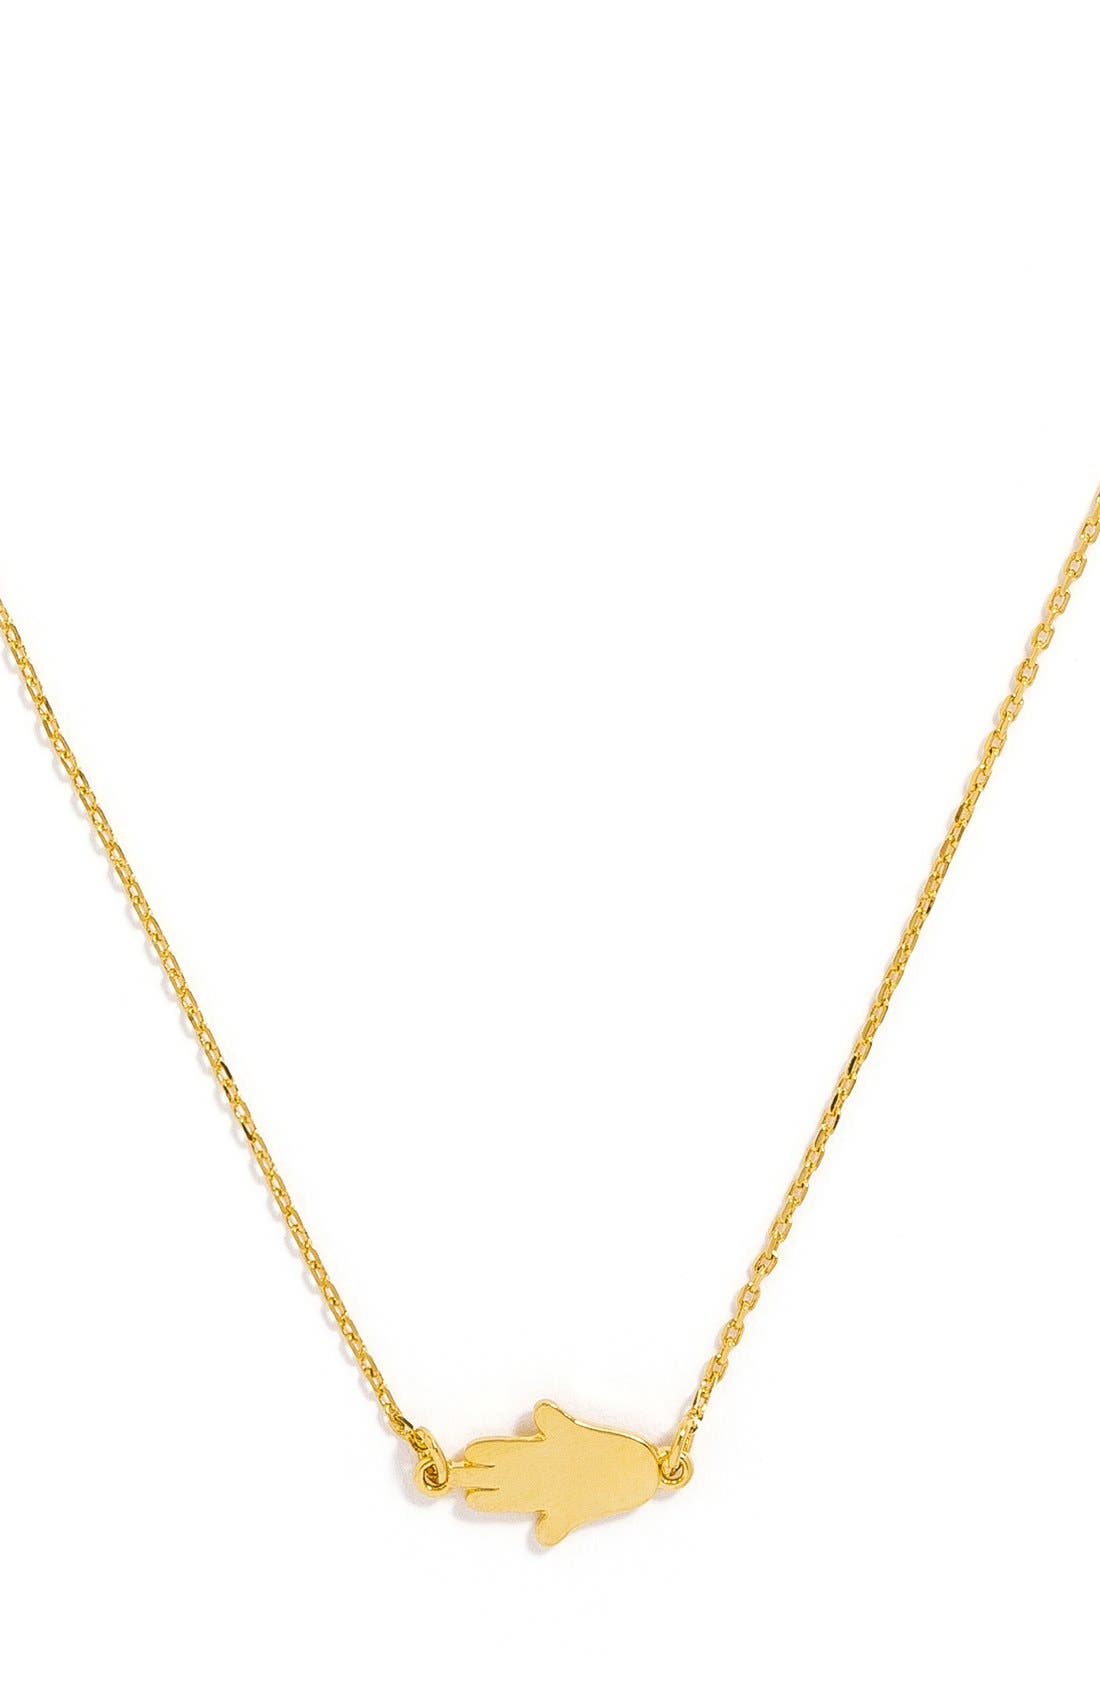 'Pyramid' Layered Necklace Gift Set,                             Alternate thumbnail 6, color,                             Gold